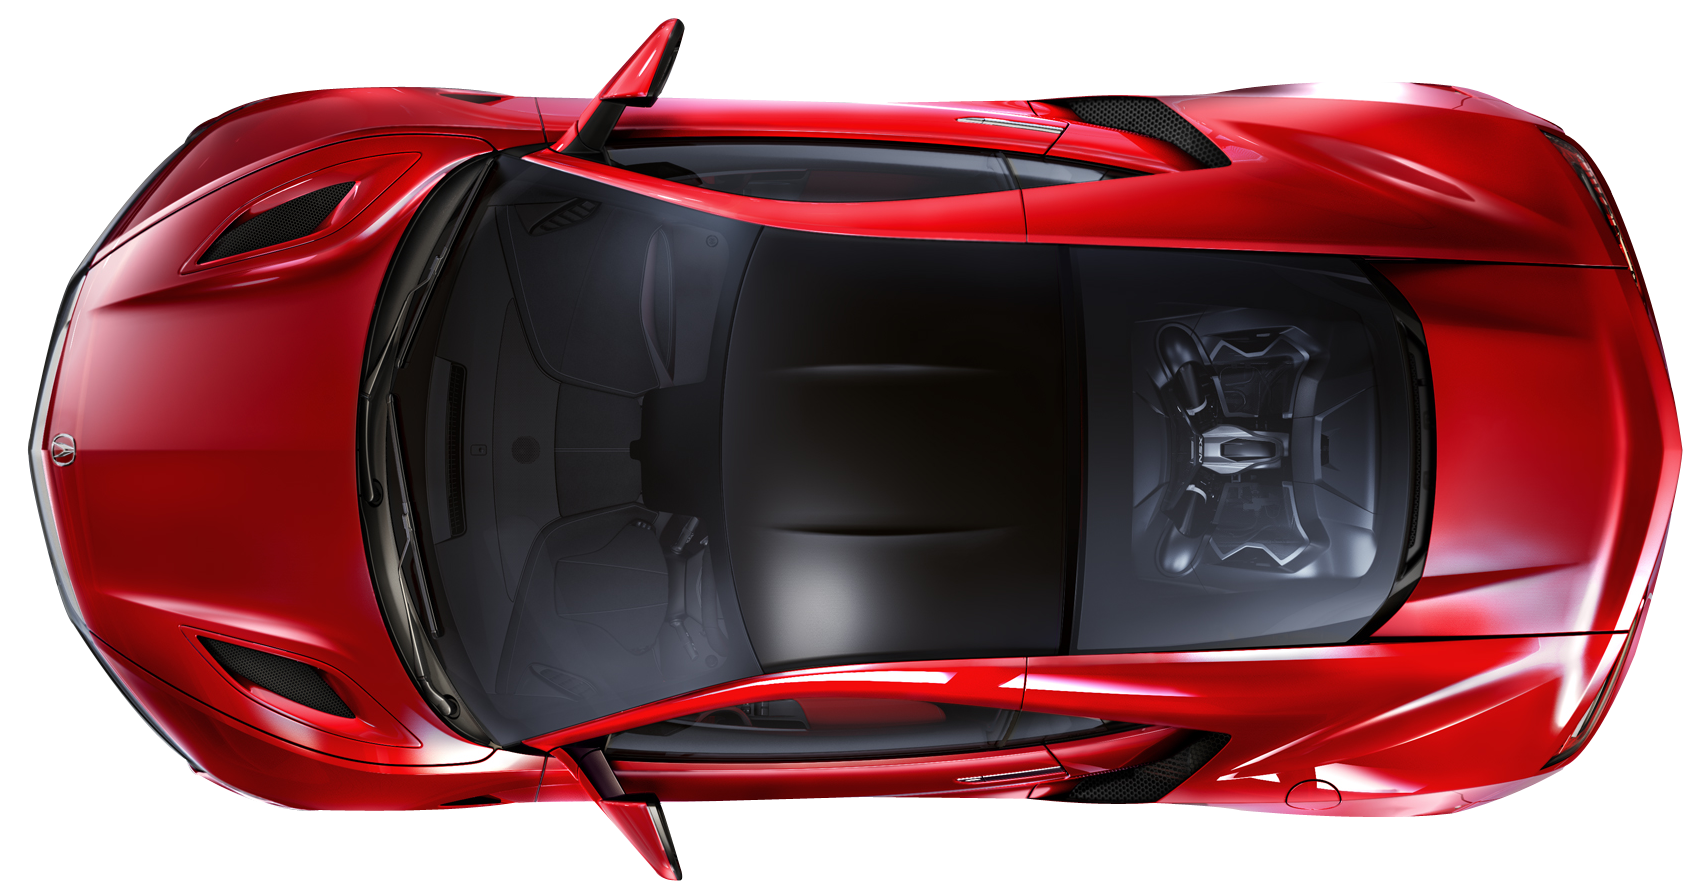 Download Car Top View PNG Image for Free.